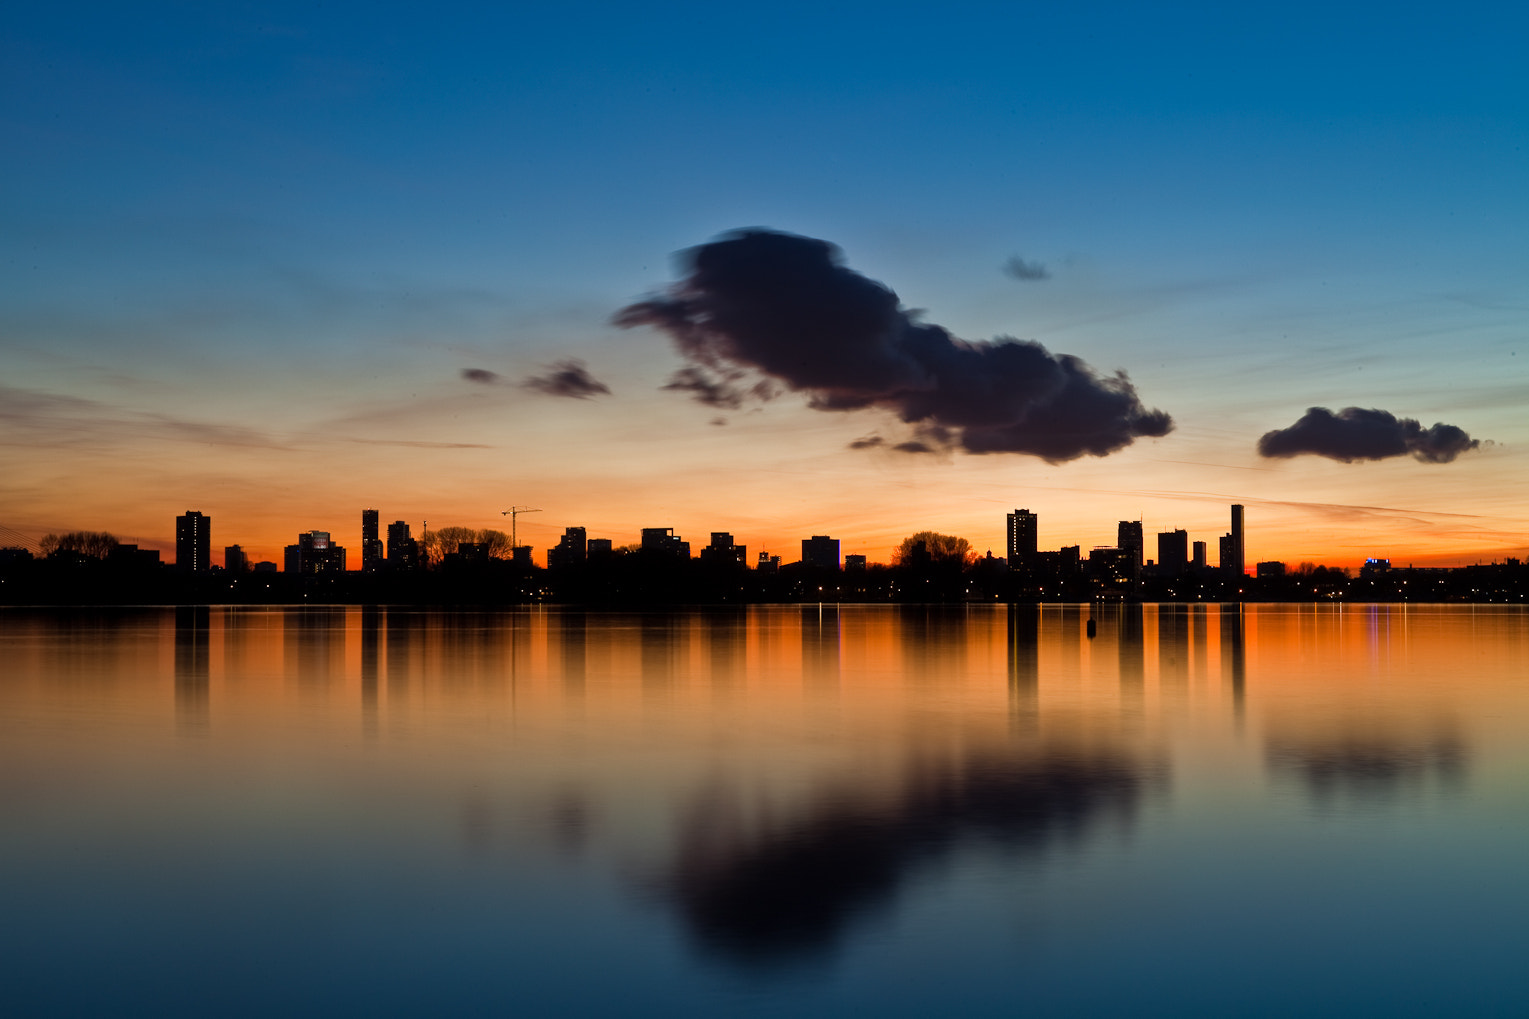 Photograph Rotterdam Skyline by Randy Ruijter on 500px